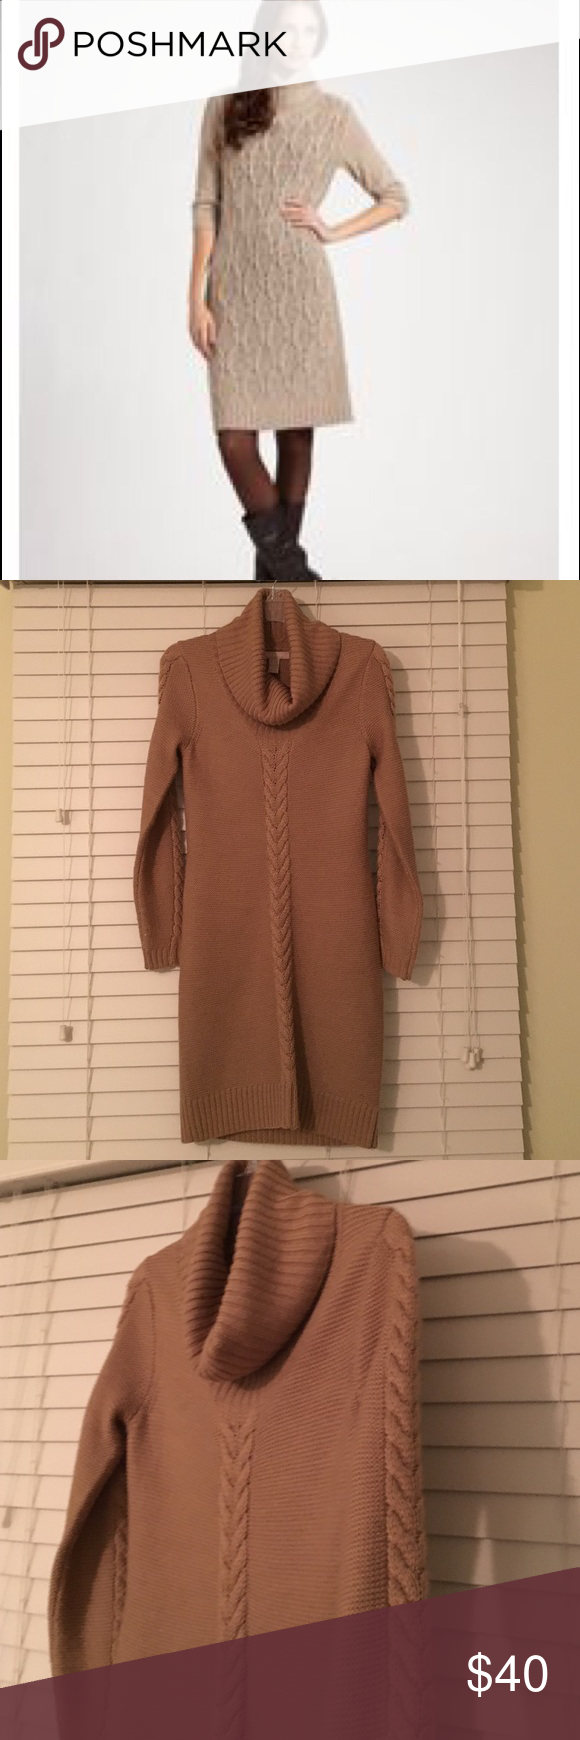 Beautiful camel cowl neck sweater dress | Cowl neck, Camels and ...